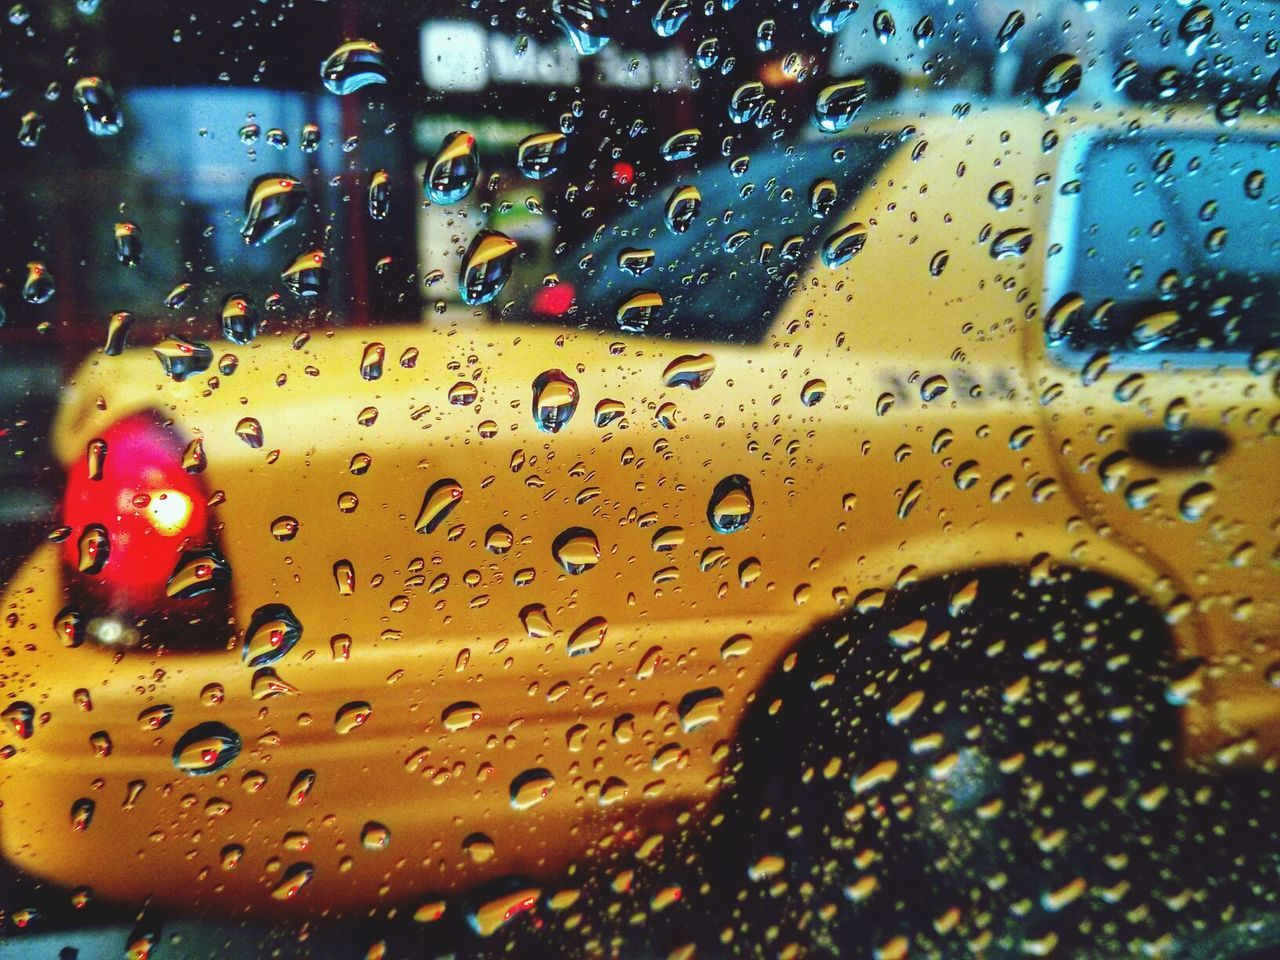 Take me to New York, darling. EyeEm Best Shots EyeEm Gallery Multiple Layers Rainy Days The Best Of New York Portrait Of America